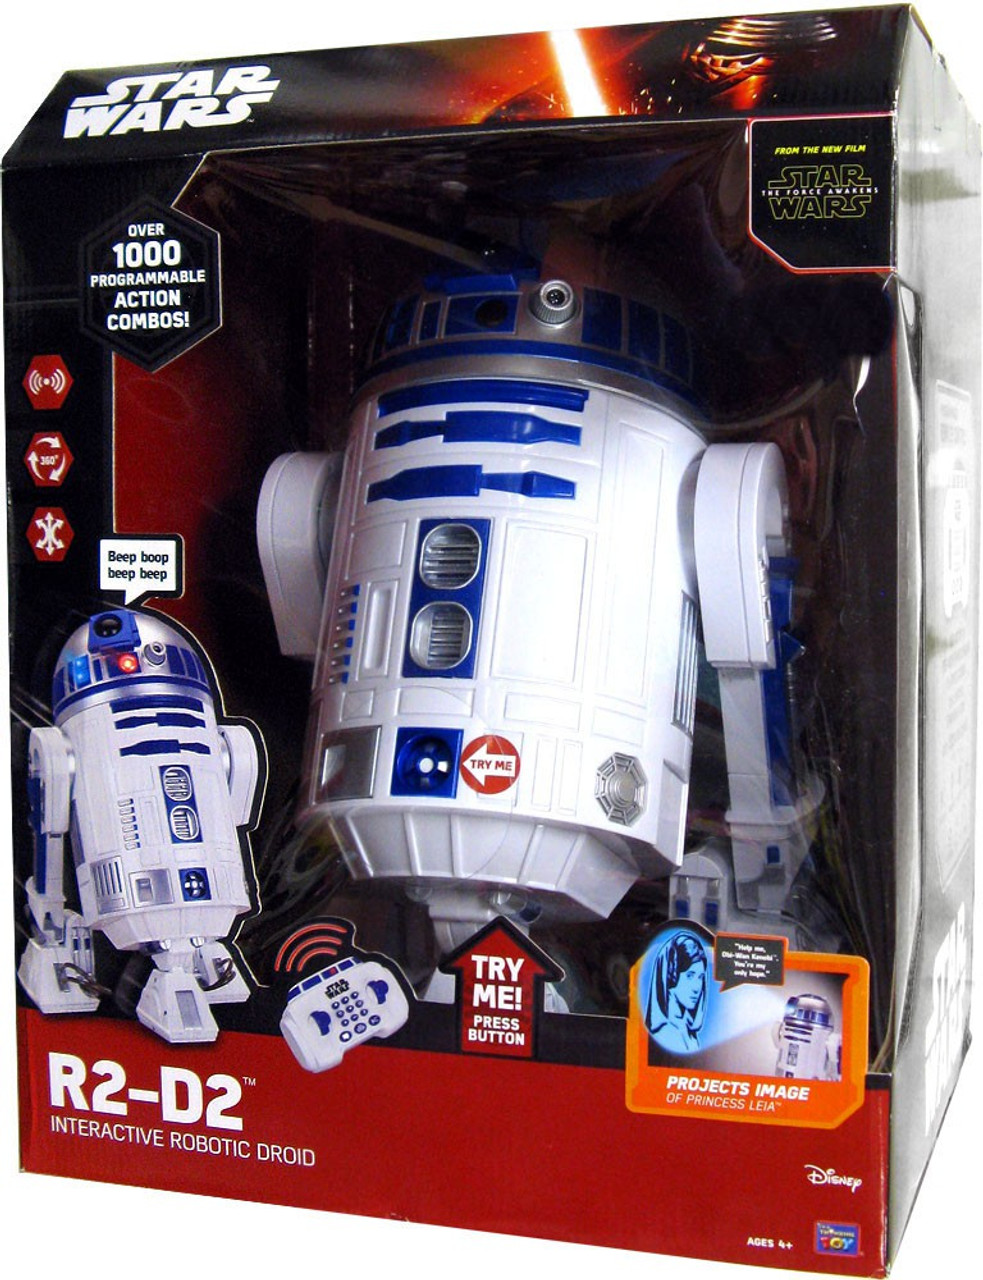 Star Wars The Force Awakens Epic Battles R2-D2 12-Inch Interactive Robotic Droid